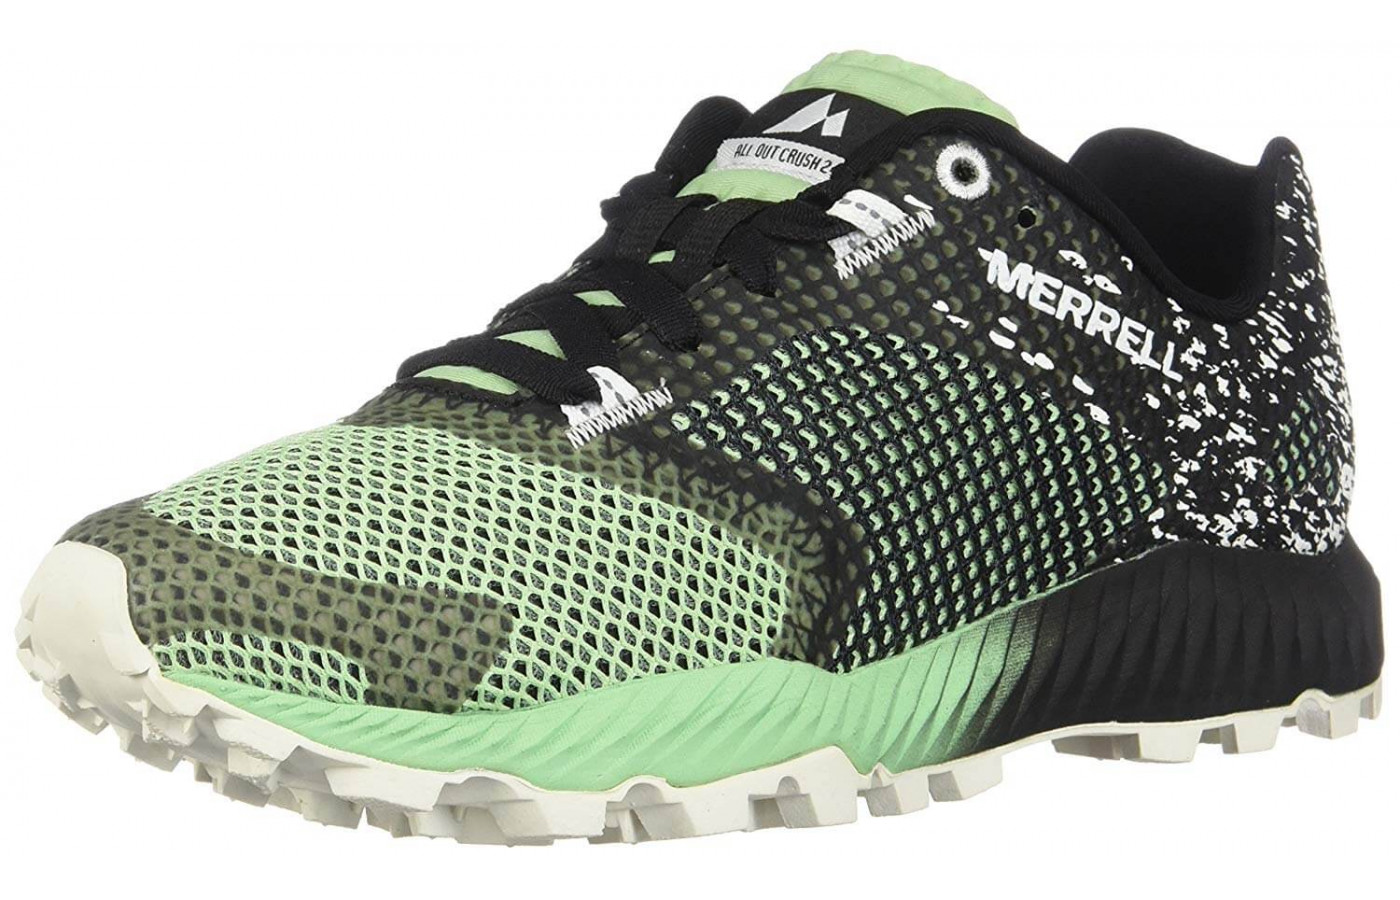 283244df2c The All Out Crush 2 is available in green and grey for both men and women  ...